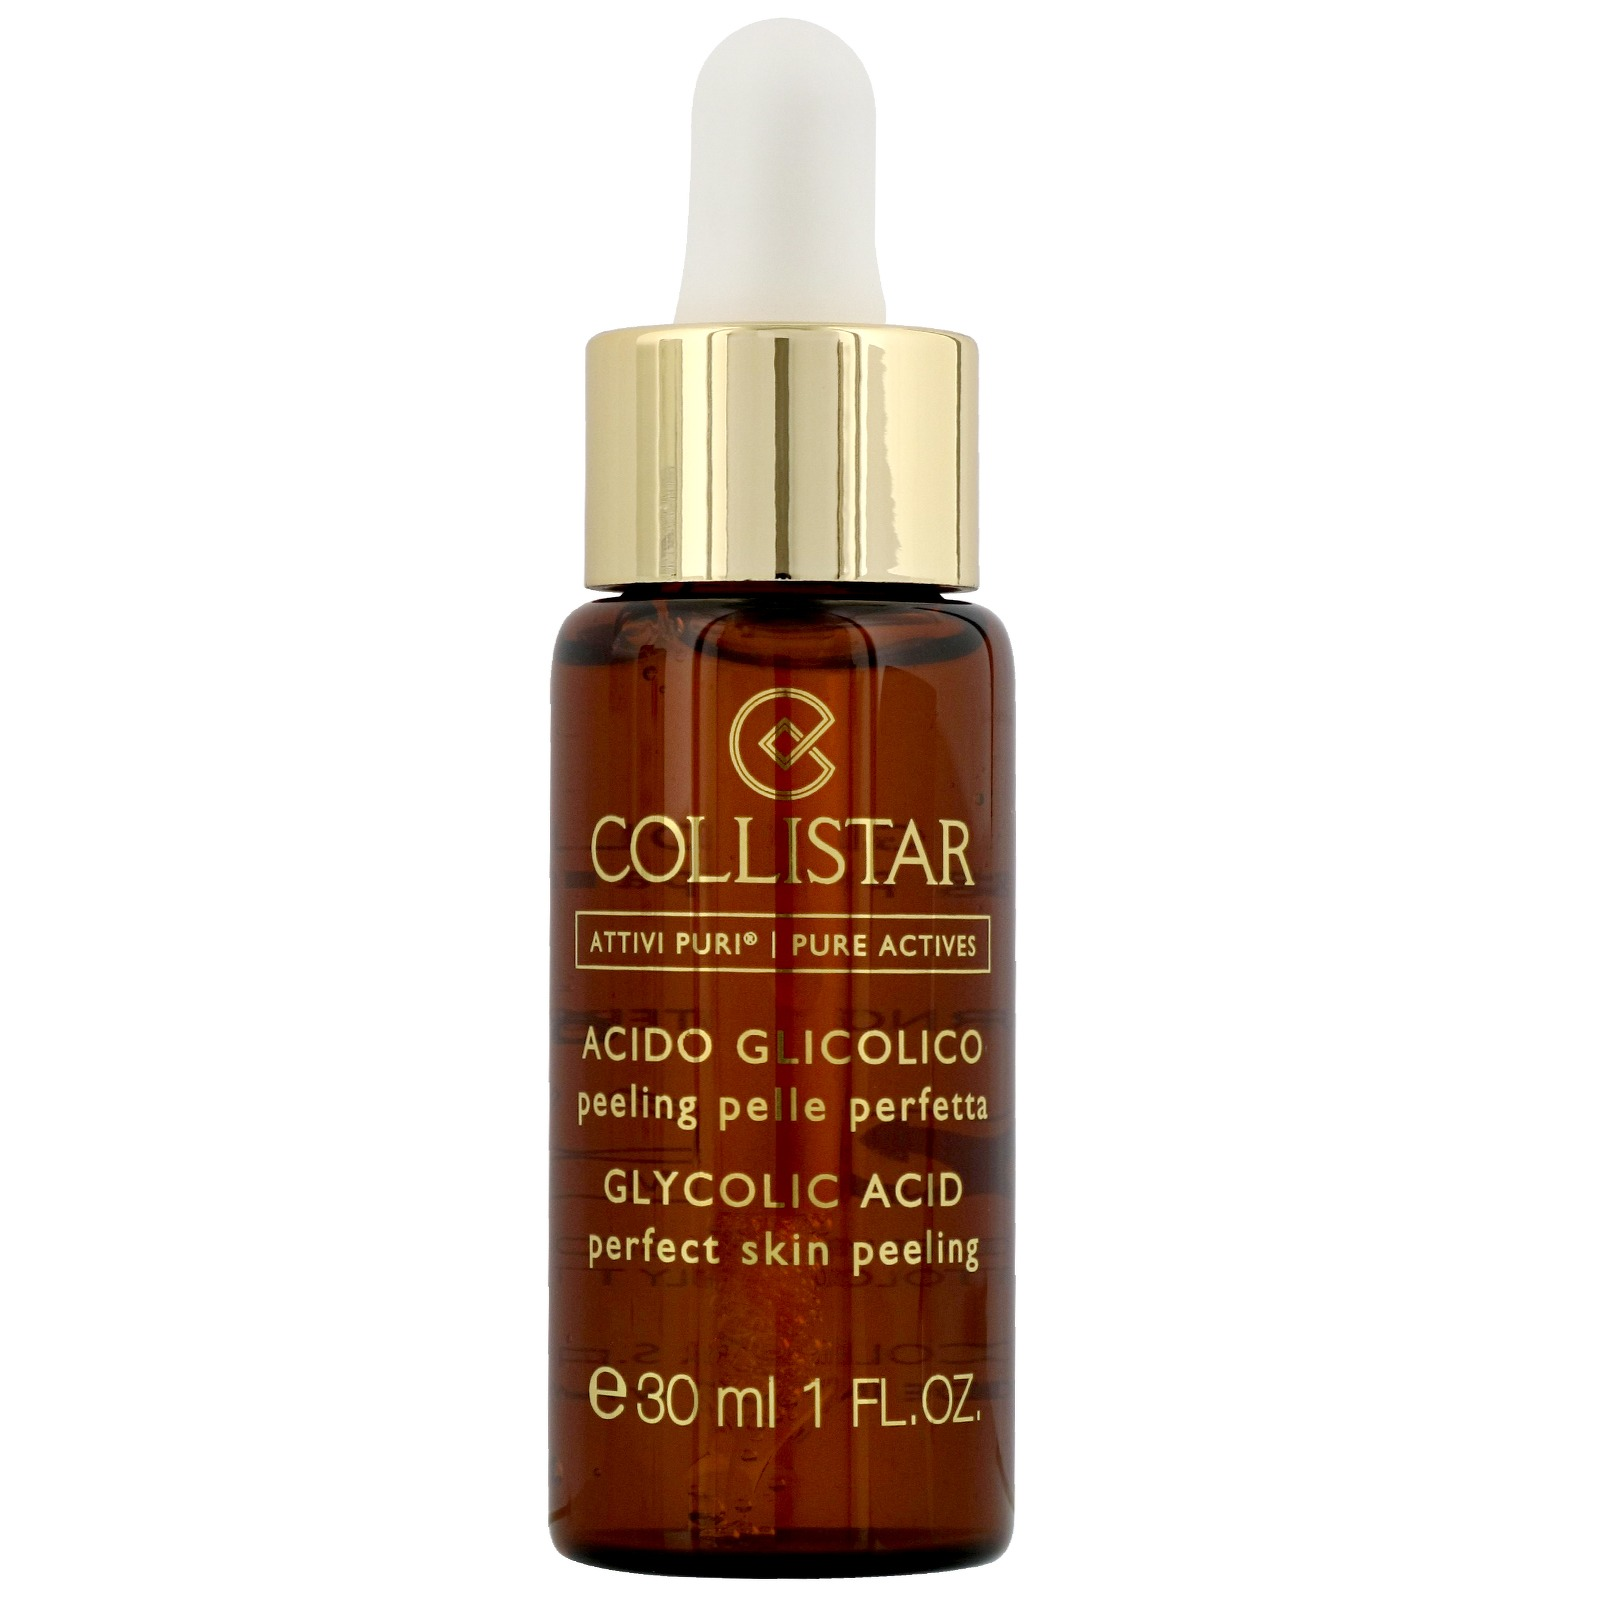 Collistar Specialties & Treatments Pure Actives Glycolic Acid 30ml